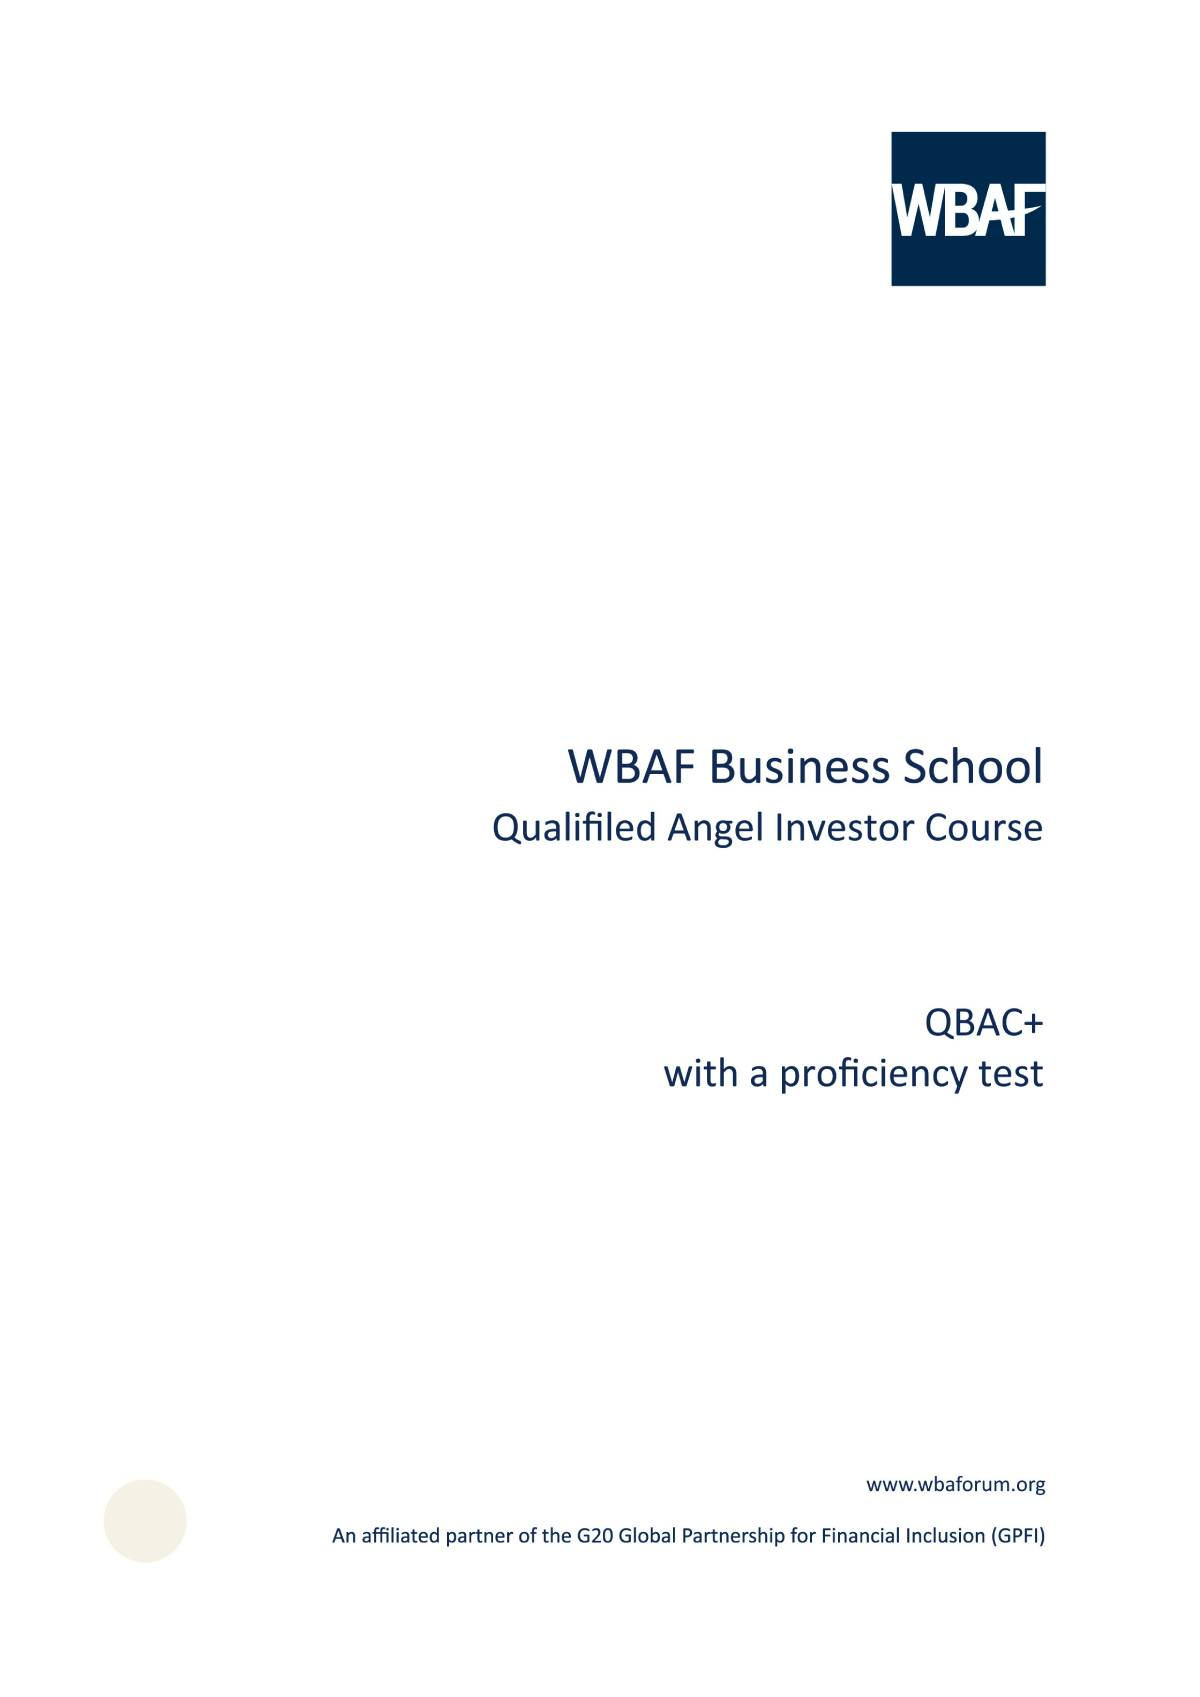 Wbaf Business School -  QBAC